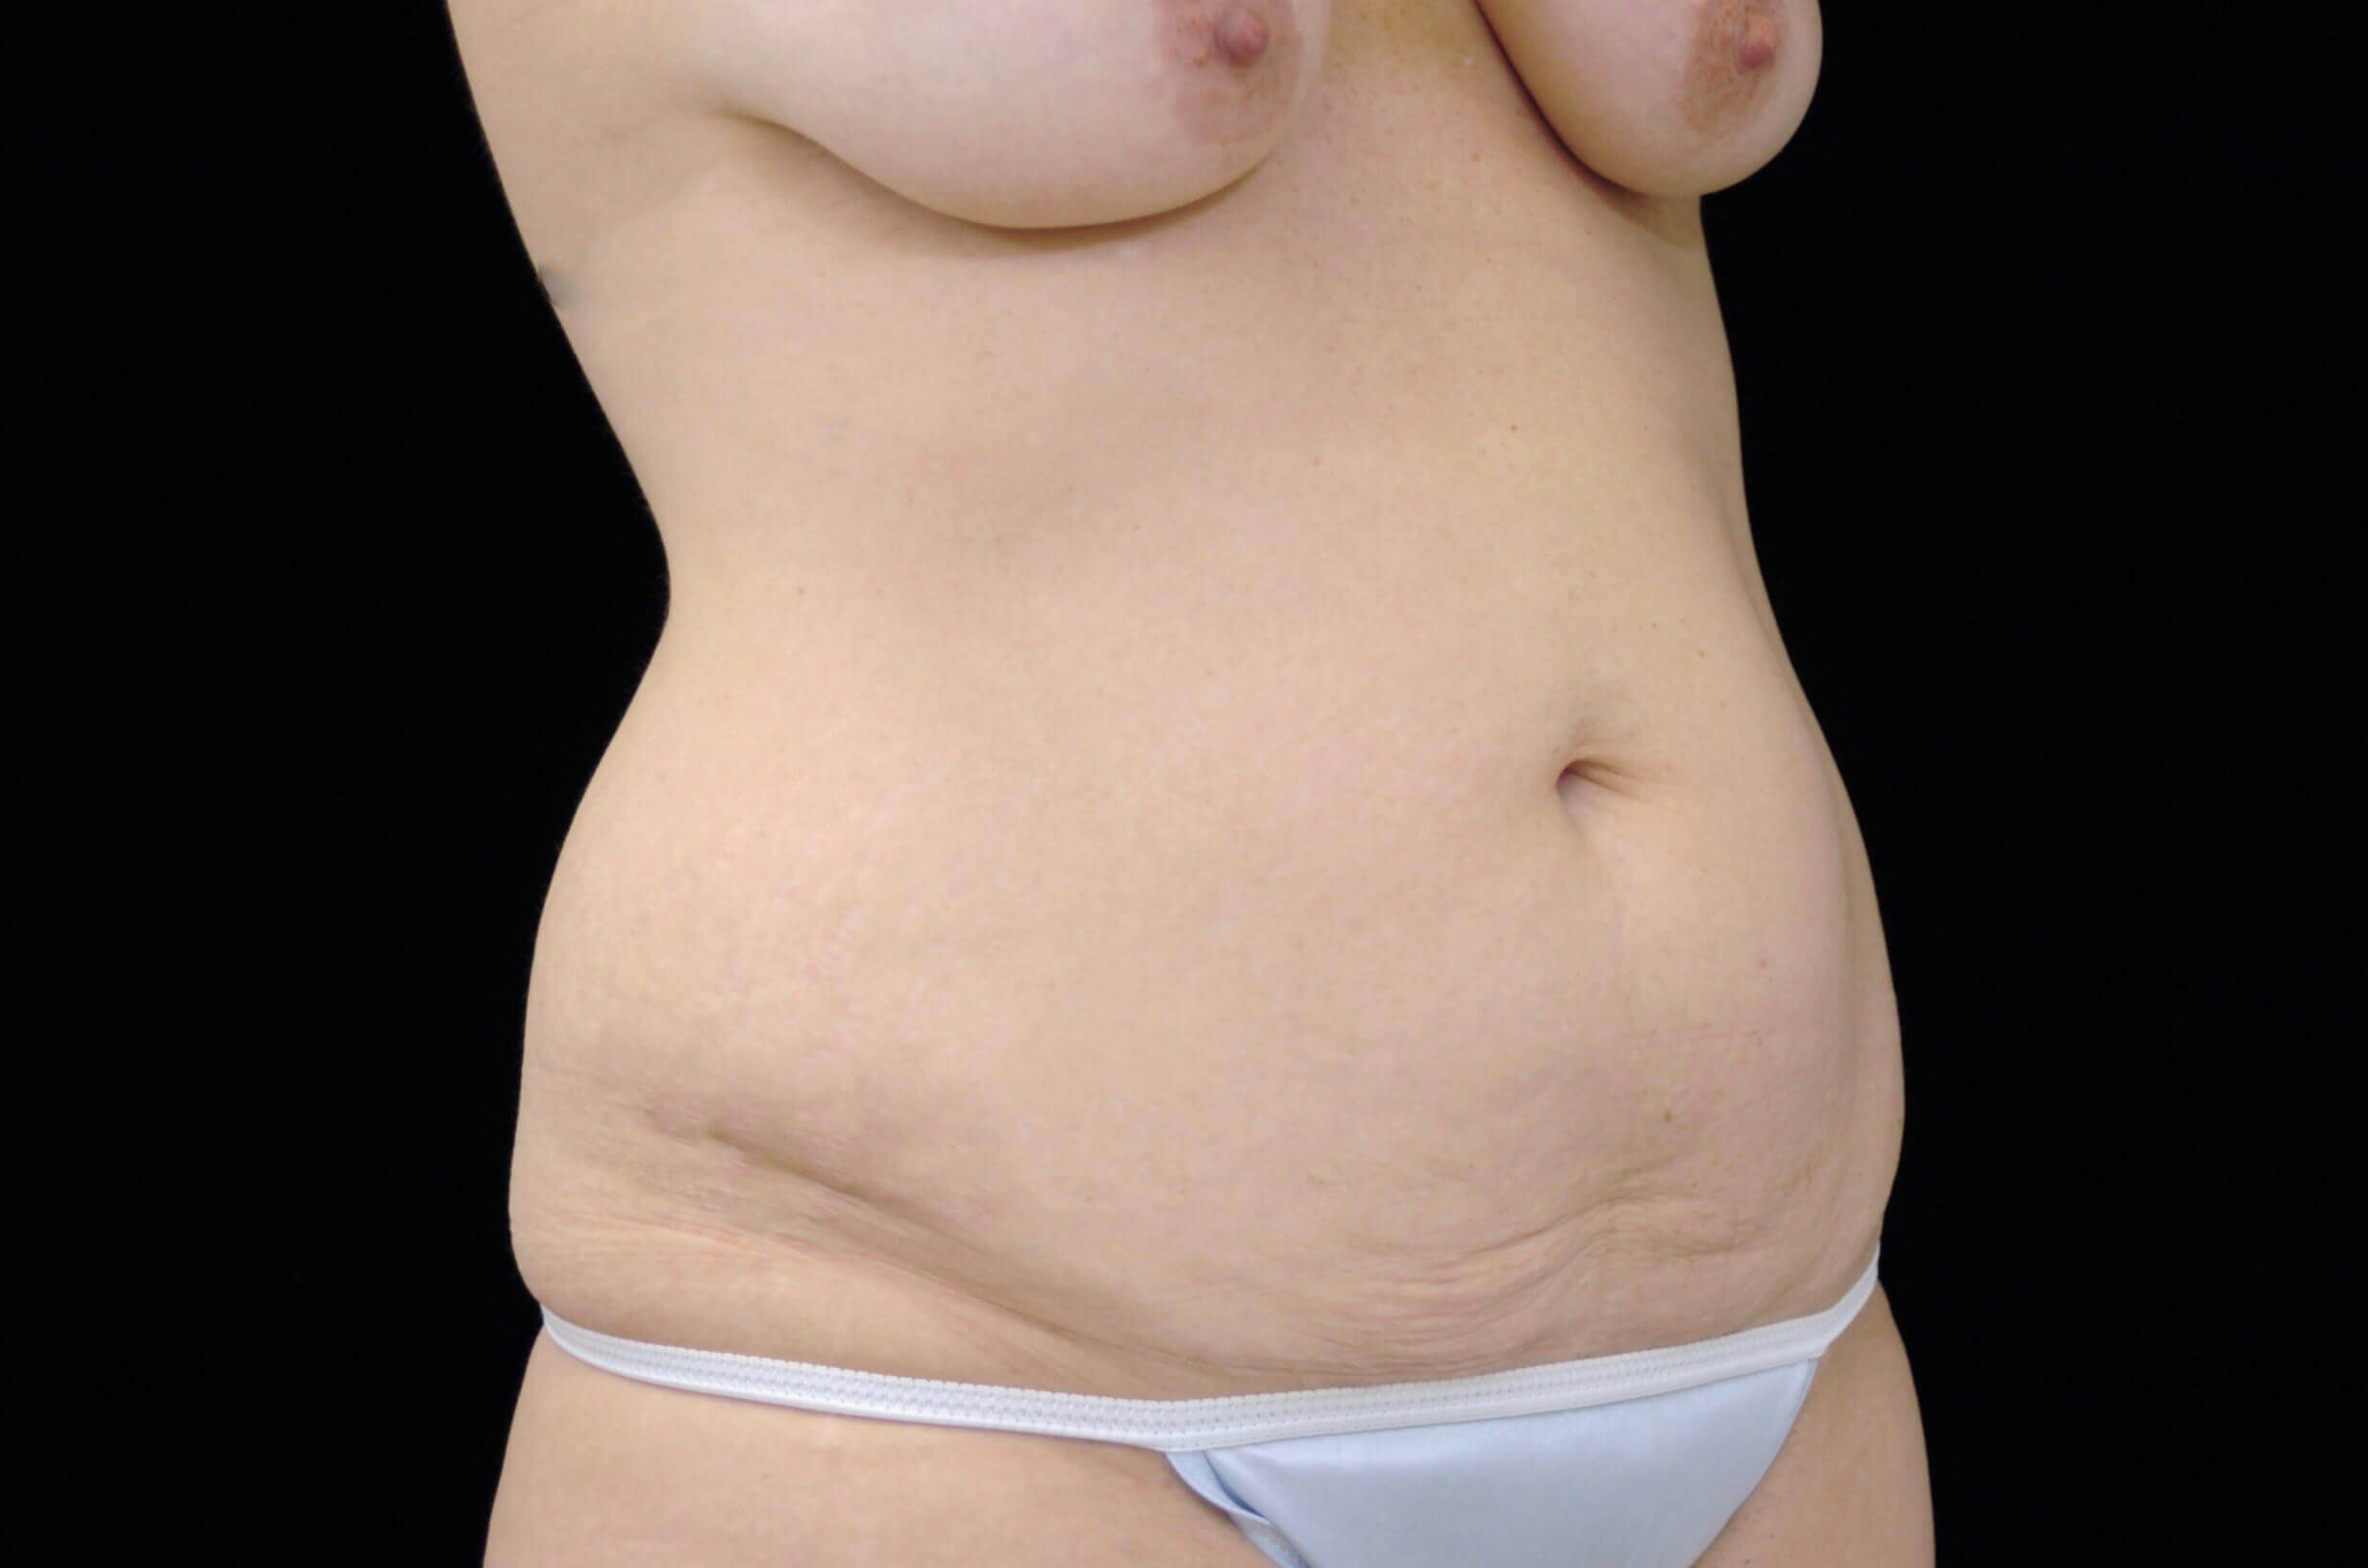 Tummy Tuck Procedure Before